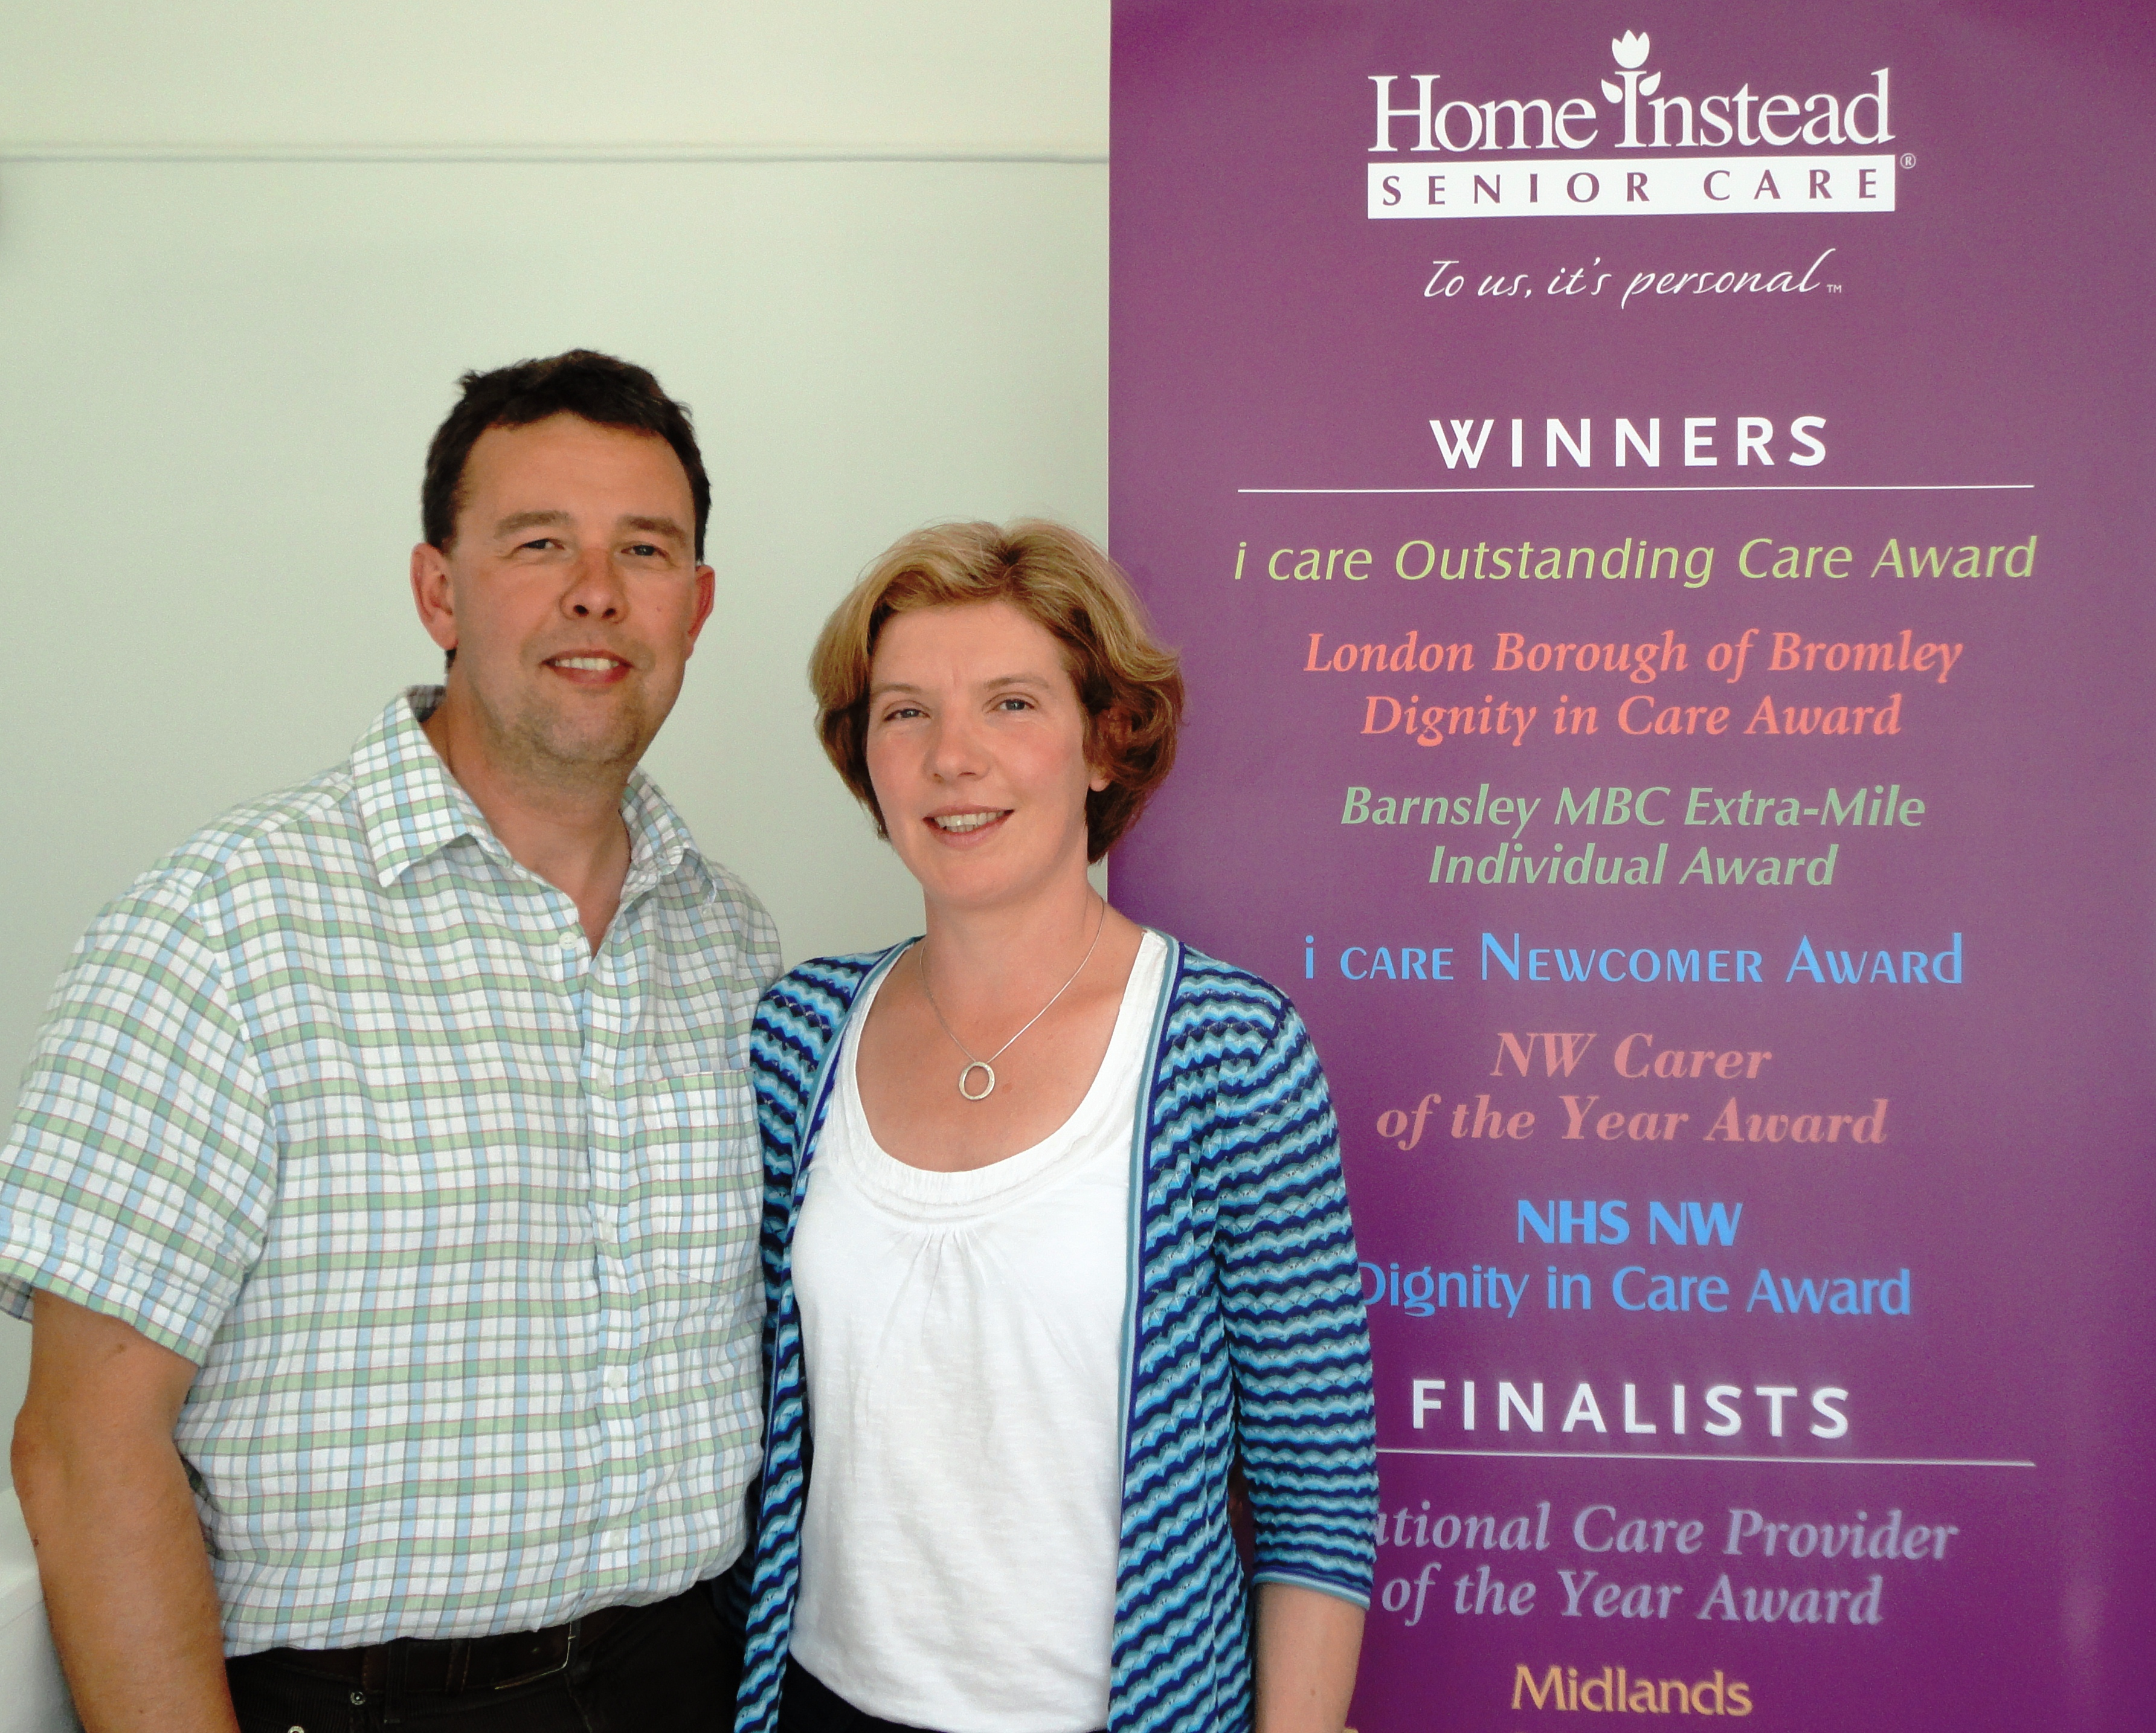 Home Instead Senior Care Edinburgh owners Andrew and Joanna Senew